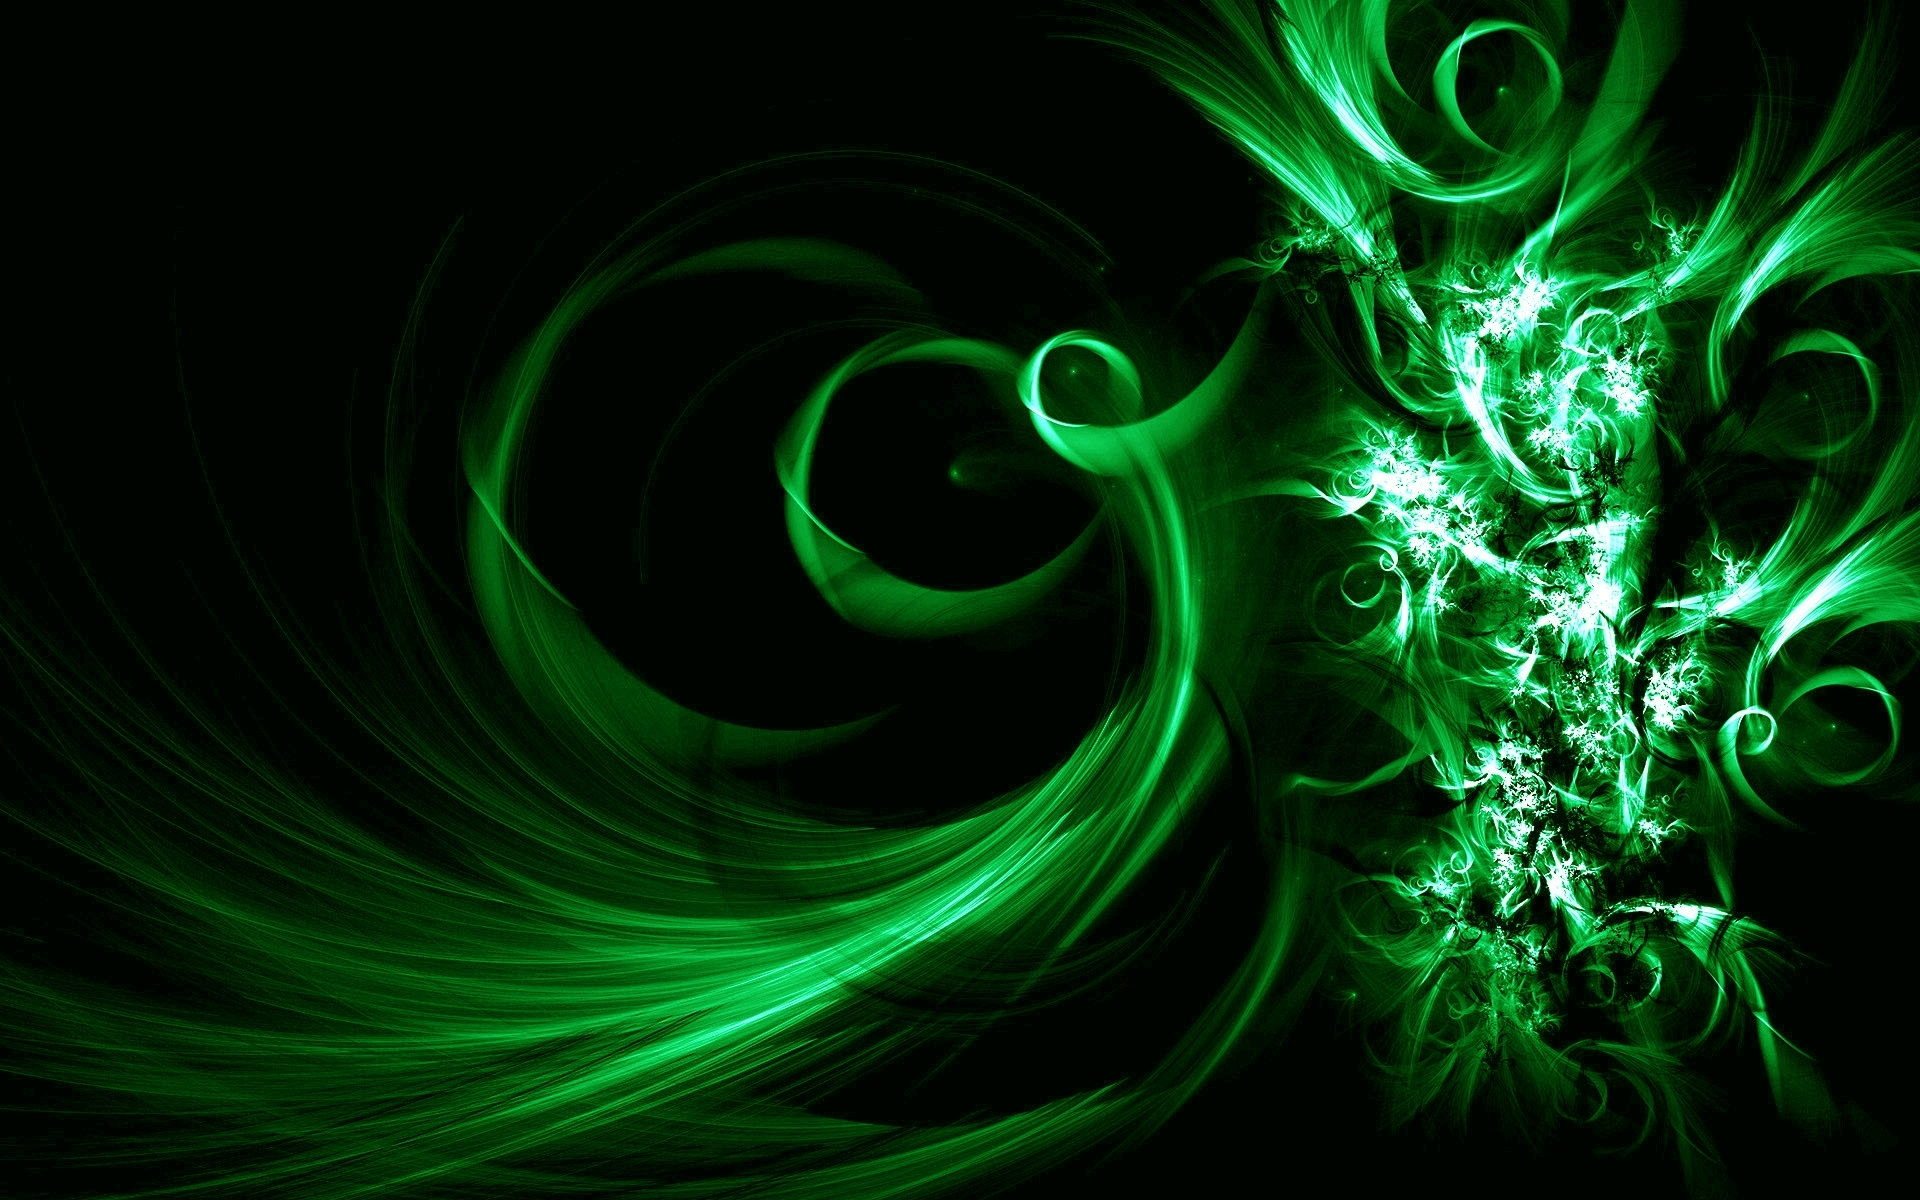 image description: this is black and green vector abstract desktop